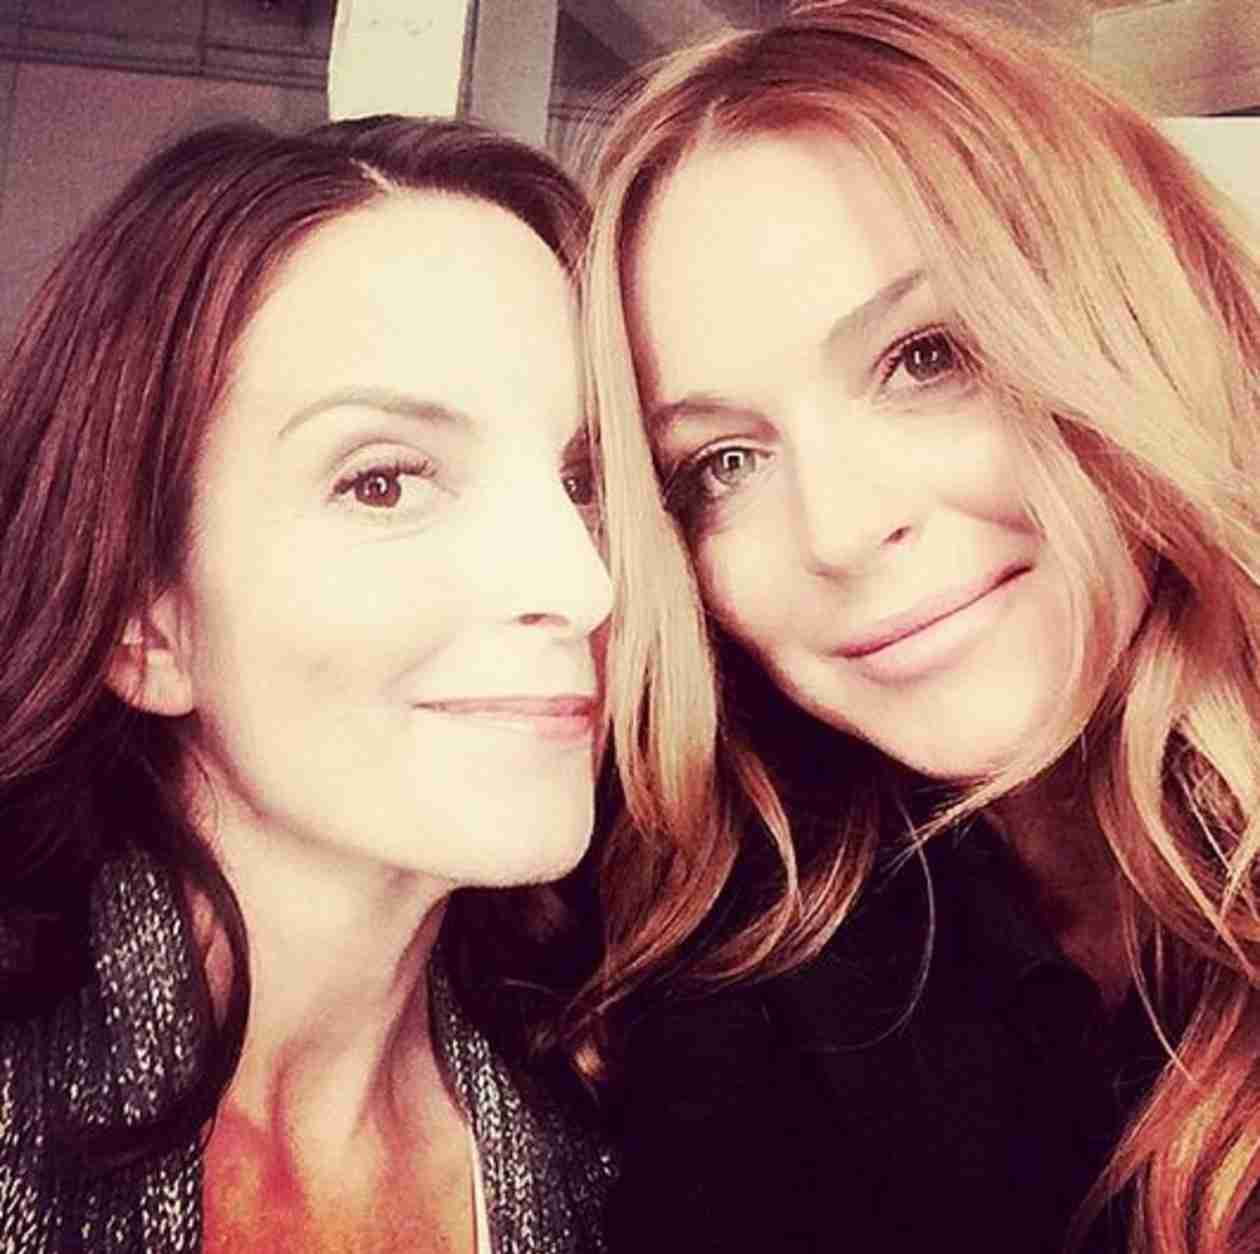 Lindsay Lohan and Tina Fey Have a Mini-Mean Girls Reunion (VIDEO)